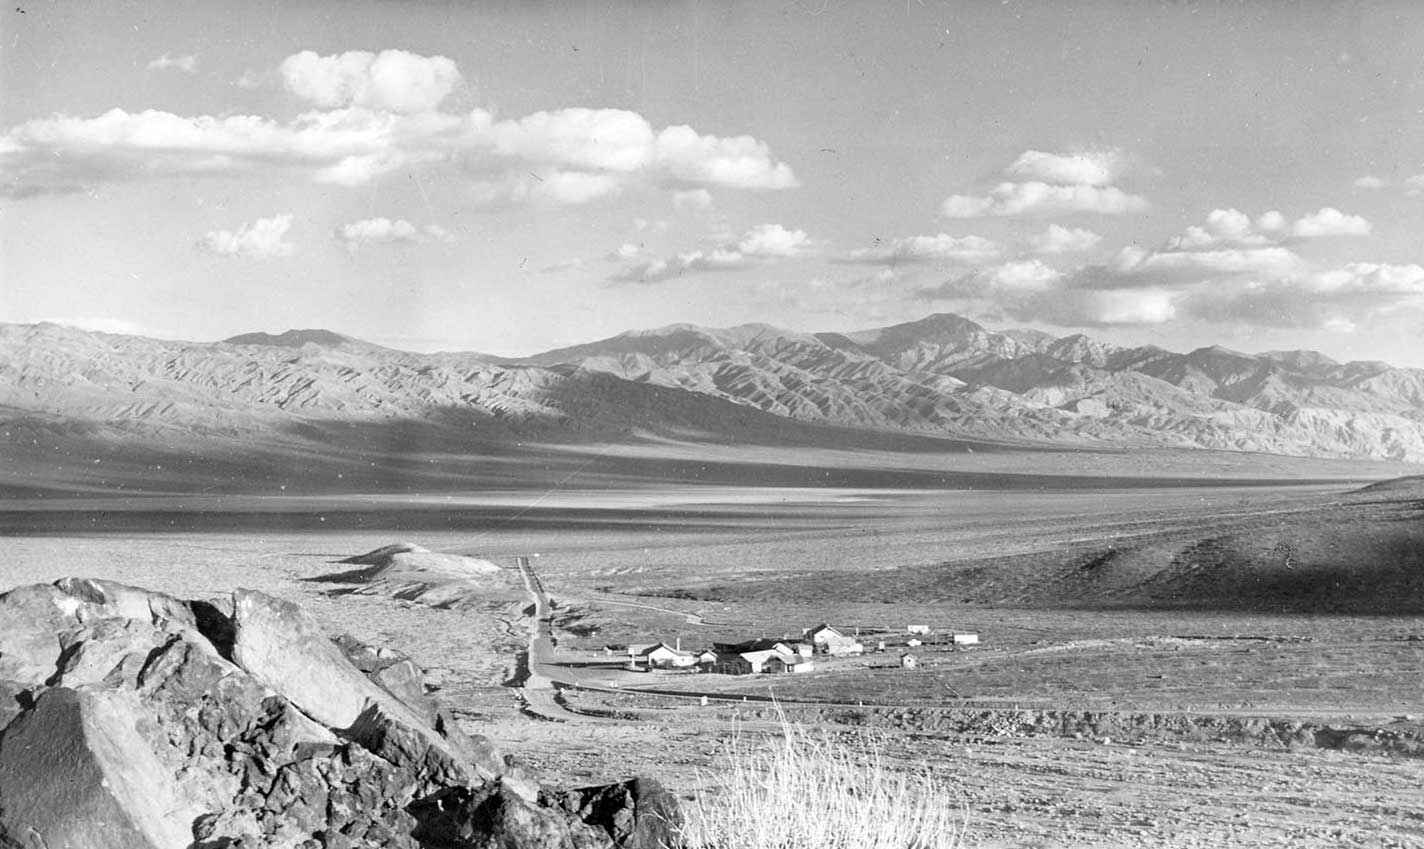 Panamint Valley looking east